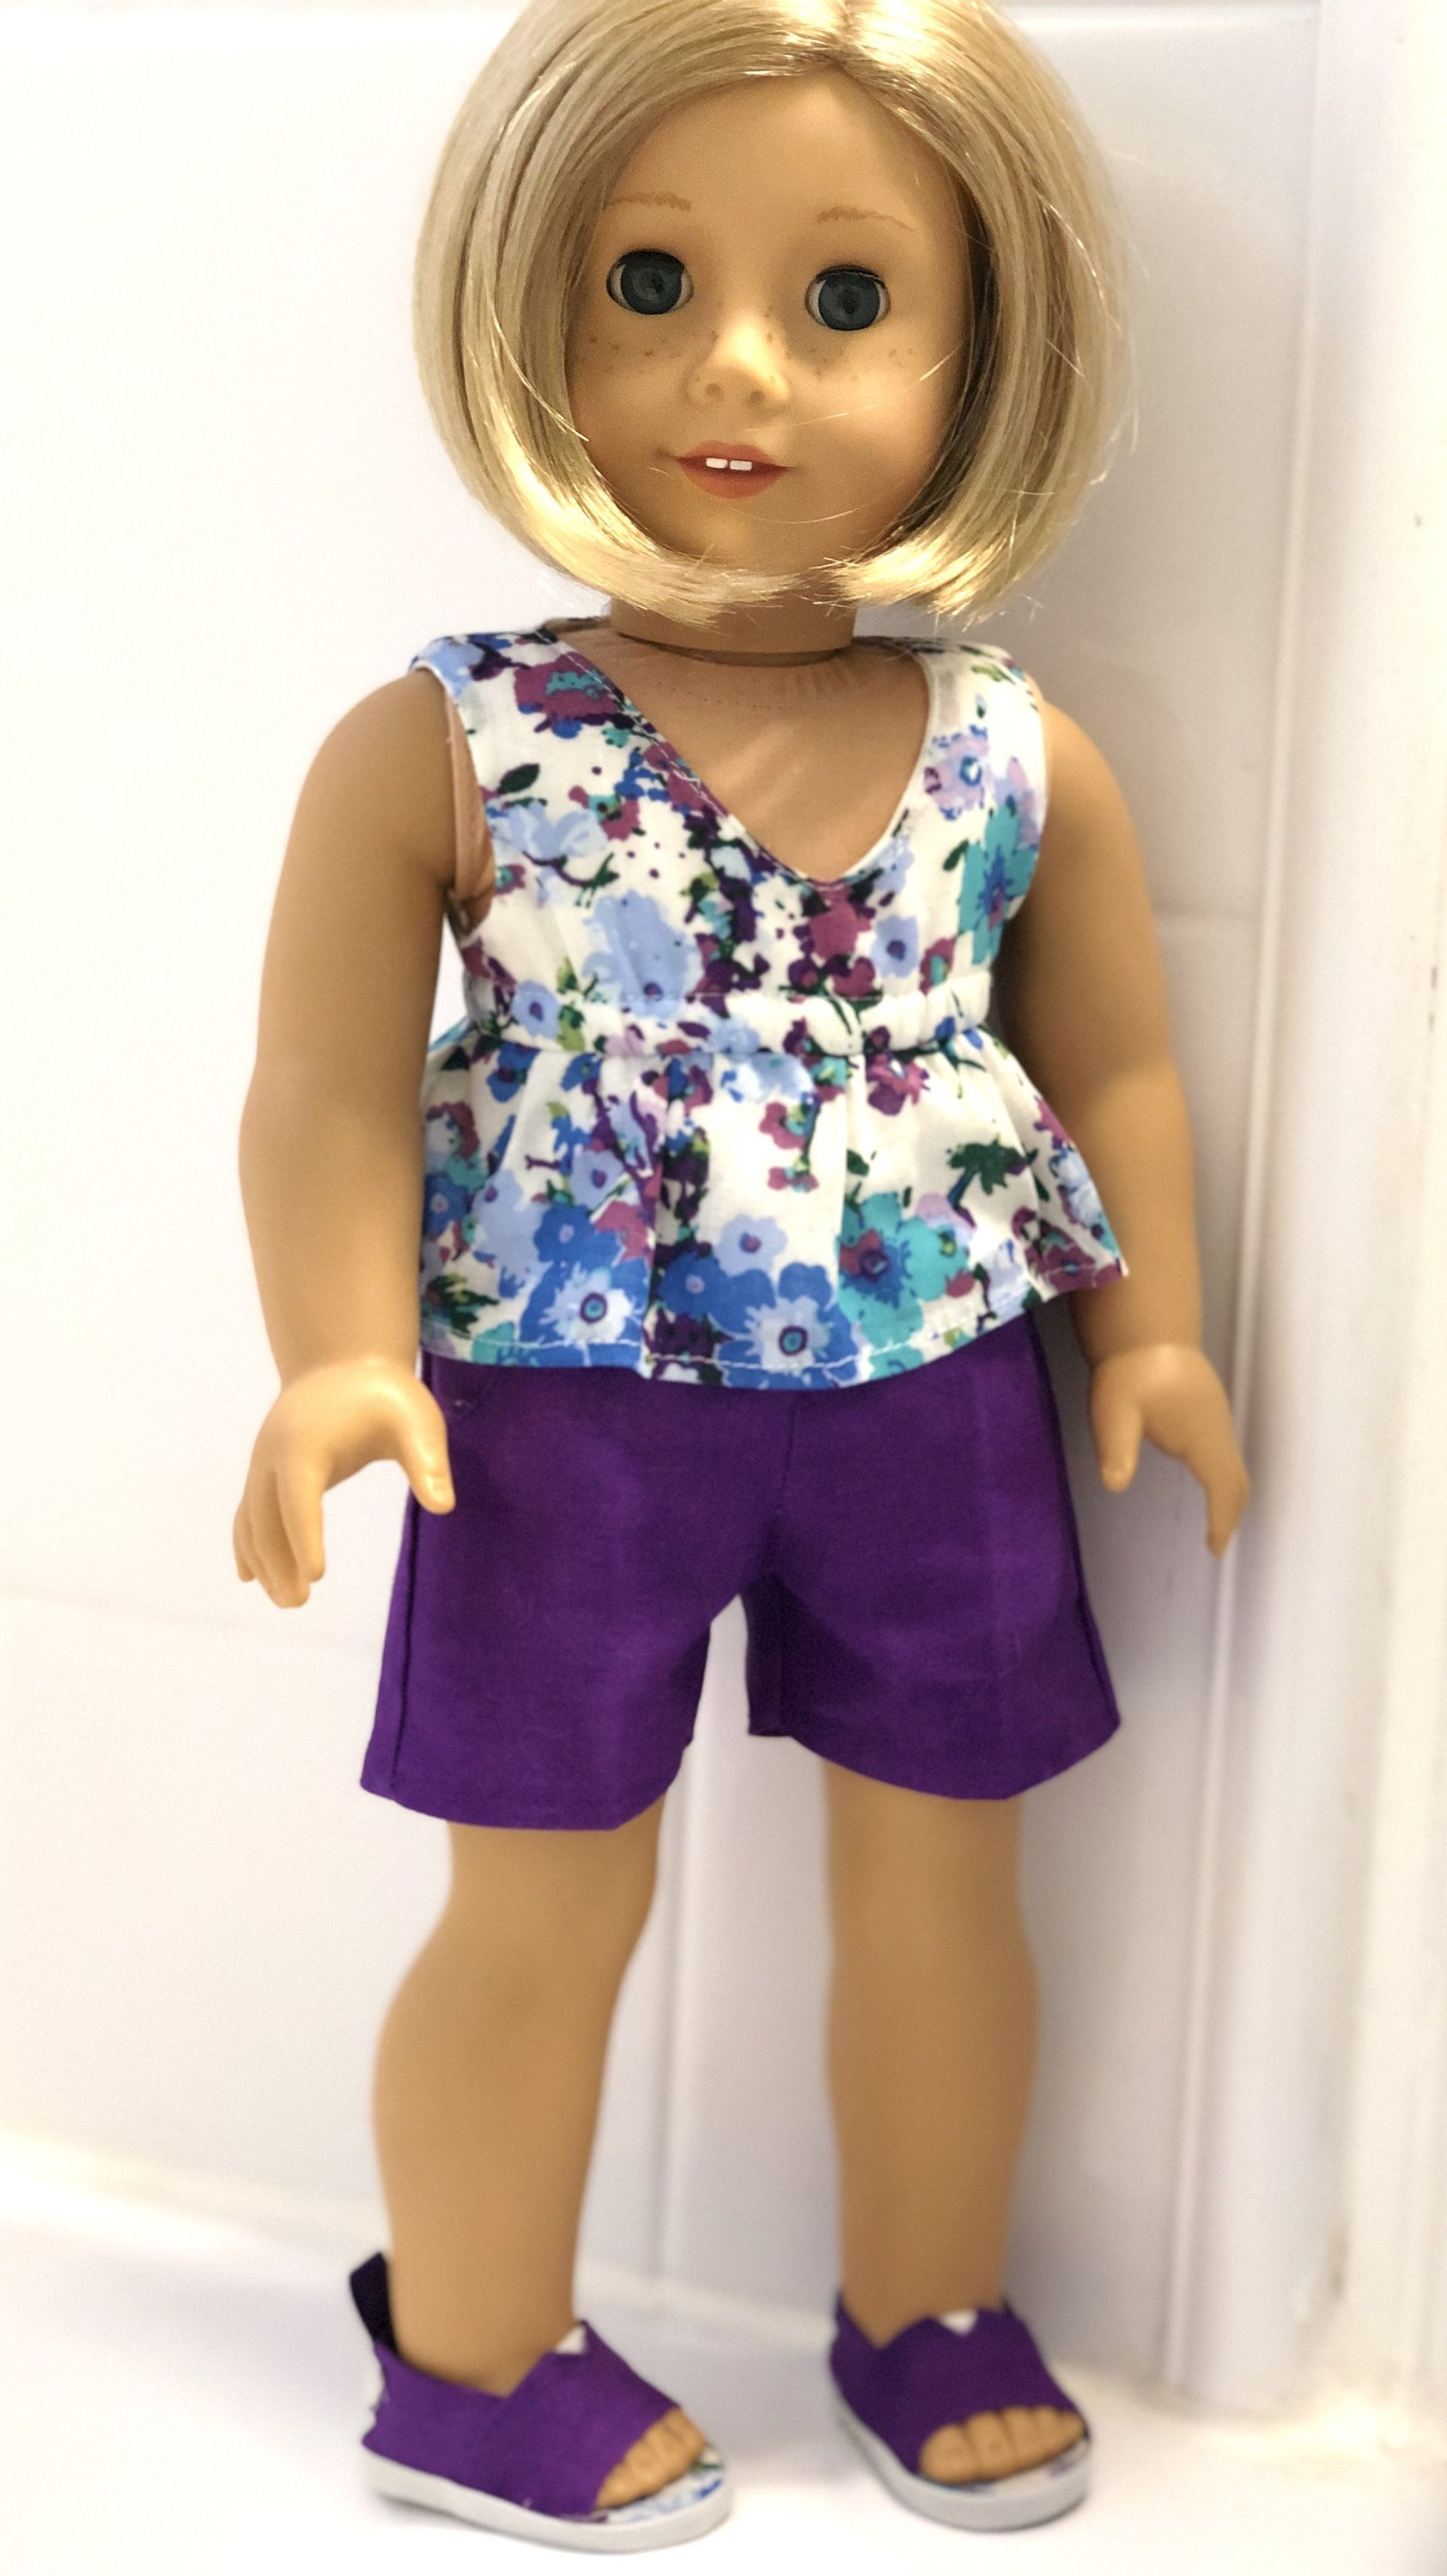 18 Inch Doll Clothes - Purple and Floral Summer Top, Shorts, and Shoes Made for 18 Inch Girl Dolls Such as THE MOST Popular Girl Doll